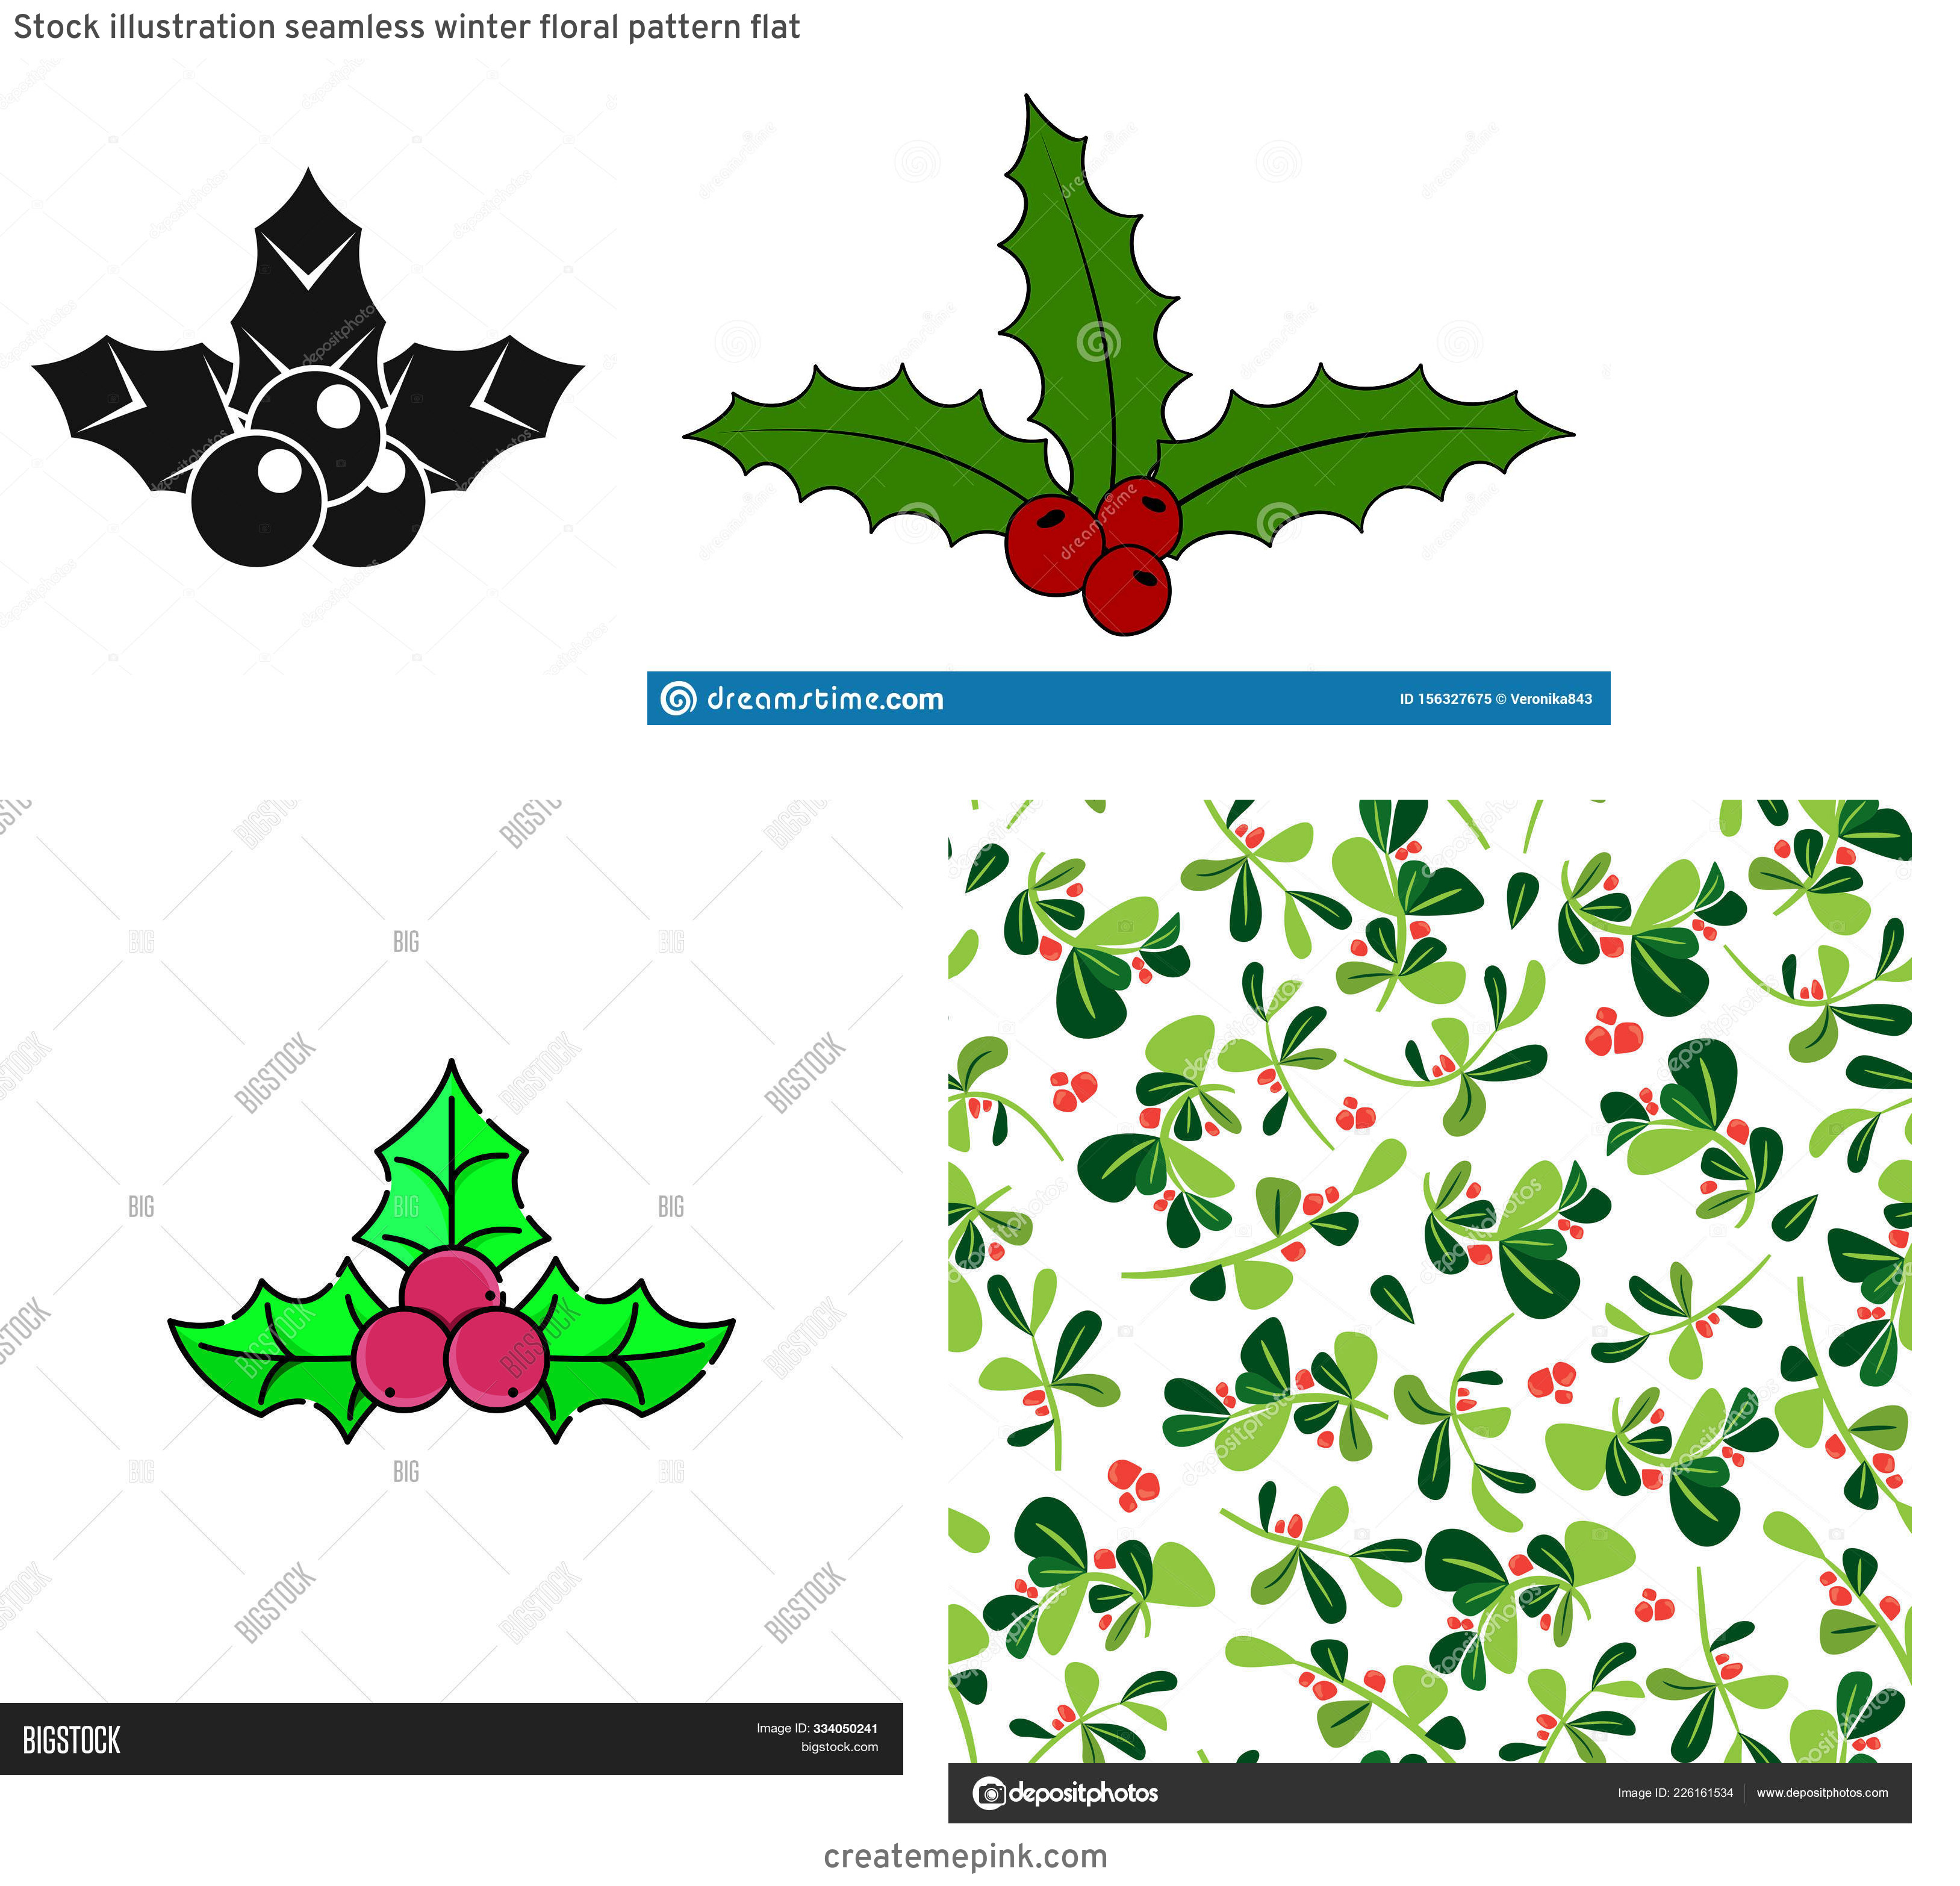 Holly Berry Vector Background: Stock Illustration Seamless Winter Floral Pattern Flat